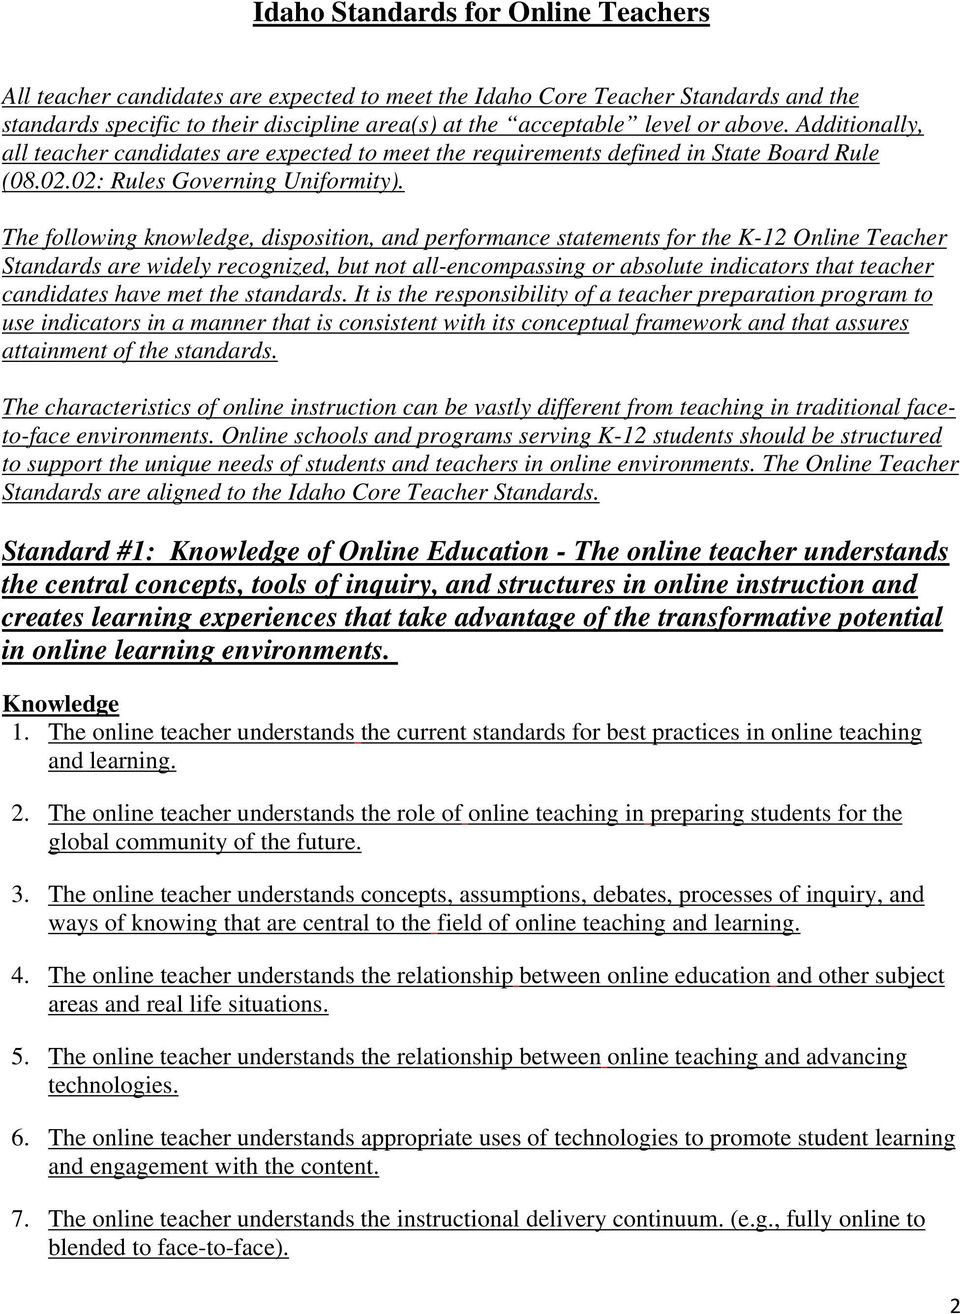 The following knowledge, disposition, and performance statements for the K-12 Online Teacher Standards are widely recognized, but not all-encompassing or absolute indicators that teacher candidates